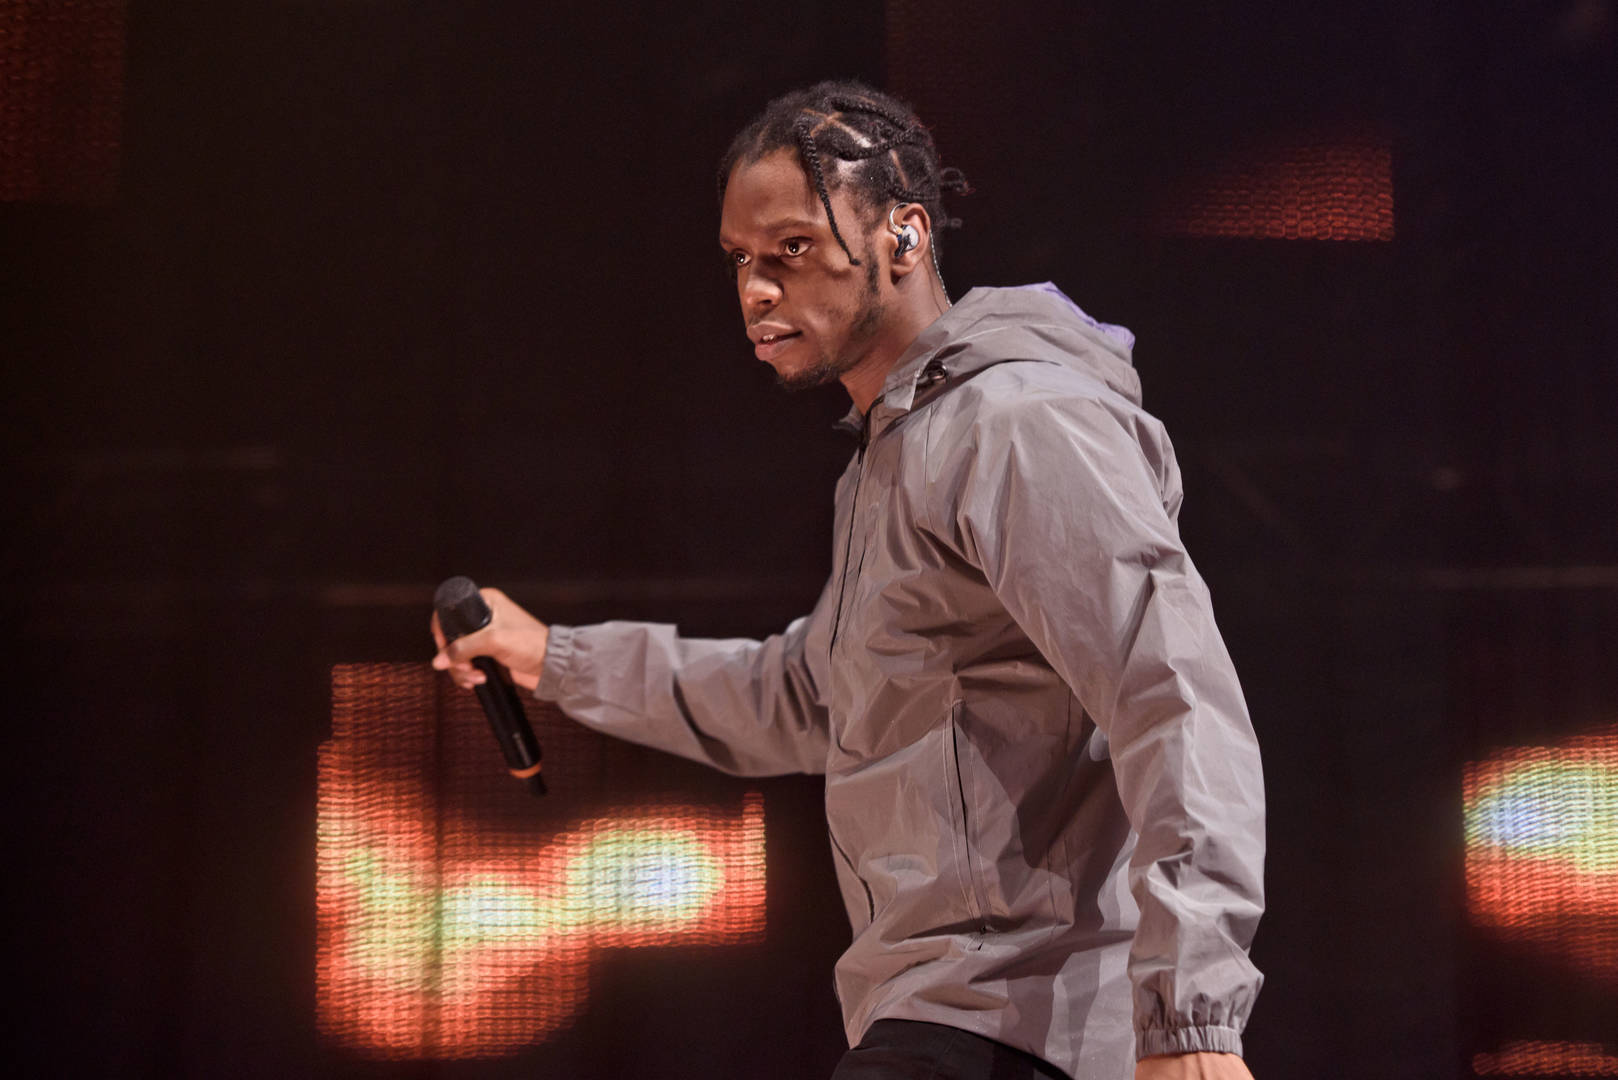 British Rapper Krept Stabbed Backstage During Knife Brawl At BBC Radio Live Show